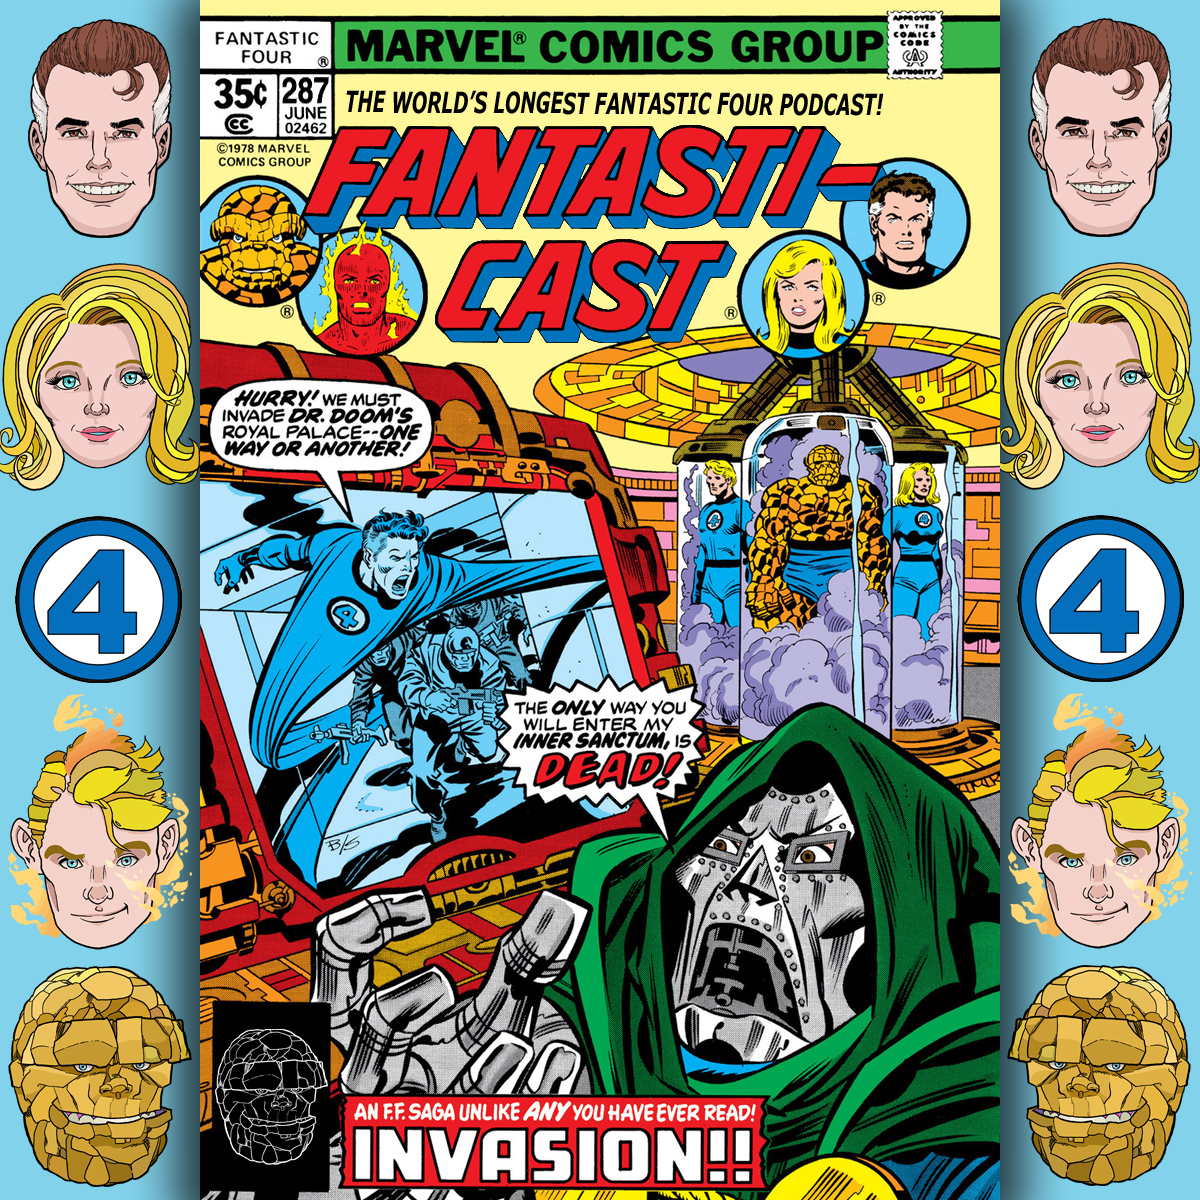 The Fantasticast Episode 287